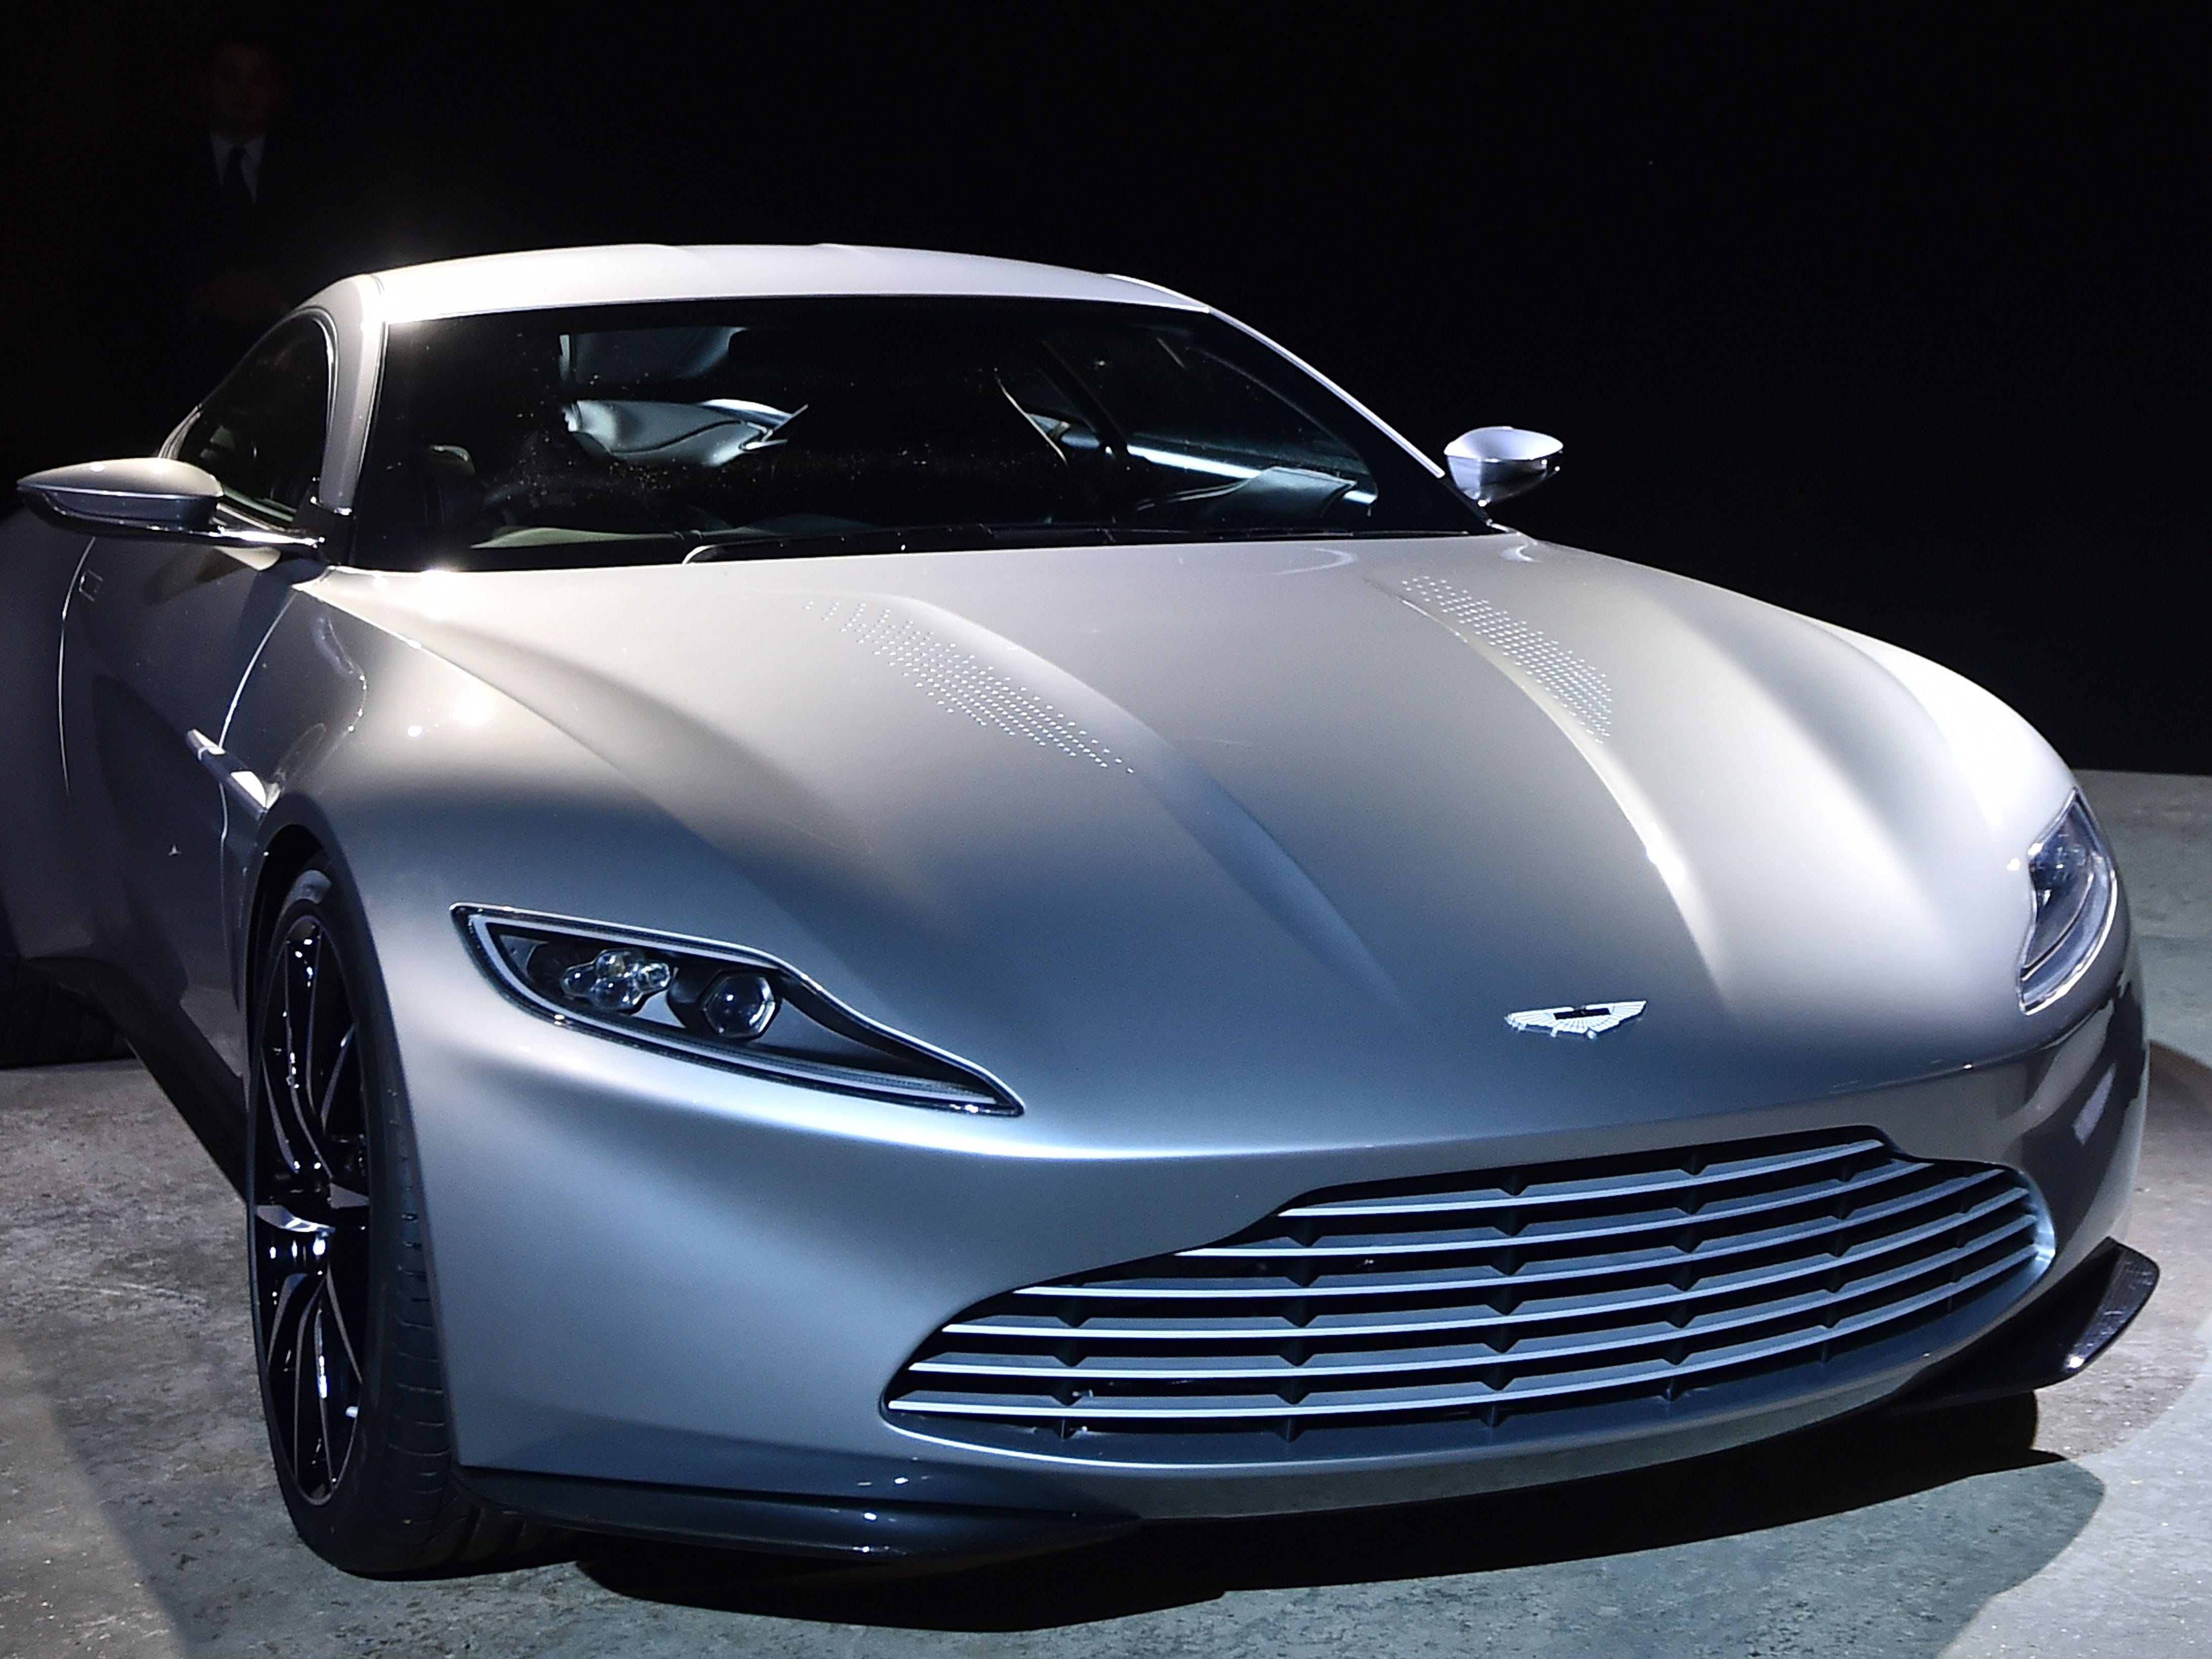 The new Bond car, an Aston Martin DB10, is seen during an event to launch the 24th James Bond film 'Spectre' at Pinewood Studios at Iver Heath in Buckinghamshire, west of London, on December 4, 2014. French actress Lea Seydoux and Italian star Monica Bellucci will star alongside Britain's Daniel Craig in the new James Bond film 'Spectre', the producers said on December 4 at the historic Pinewood Studios. AFP PHOTO / BEN STANSALLBEN STANSALL/AFP/Getty Images ORG XMIT: 6484 ORIG FILE ID: 535880402